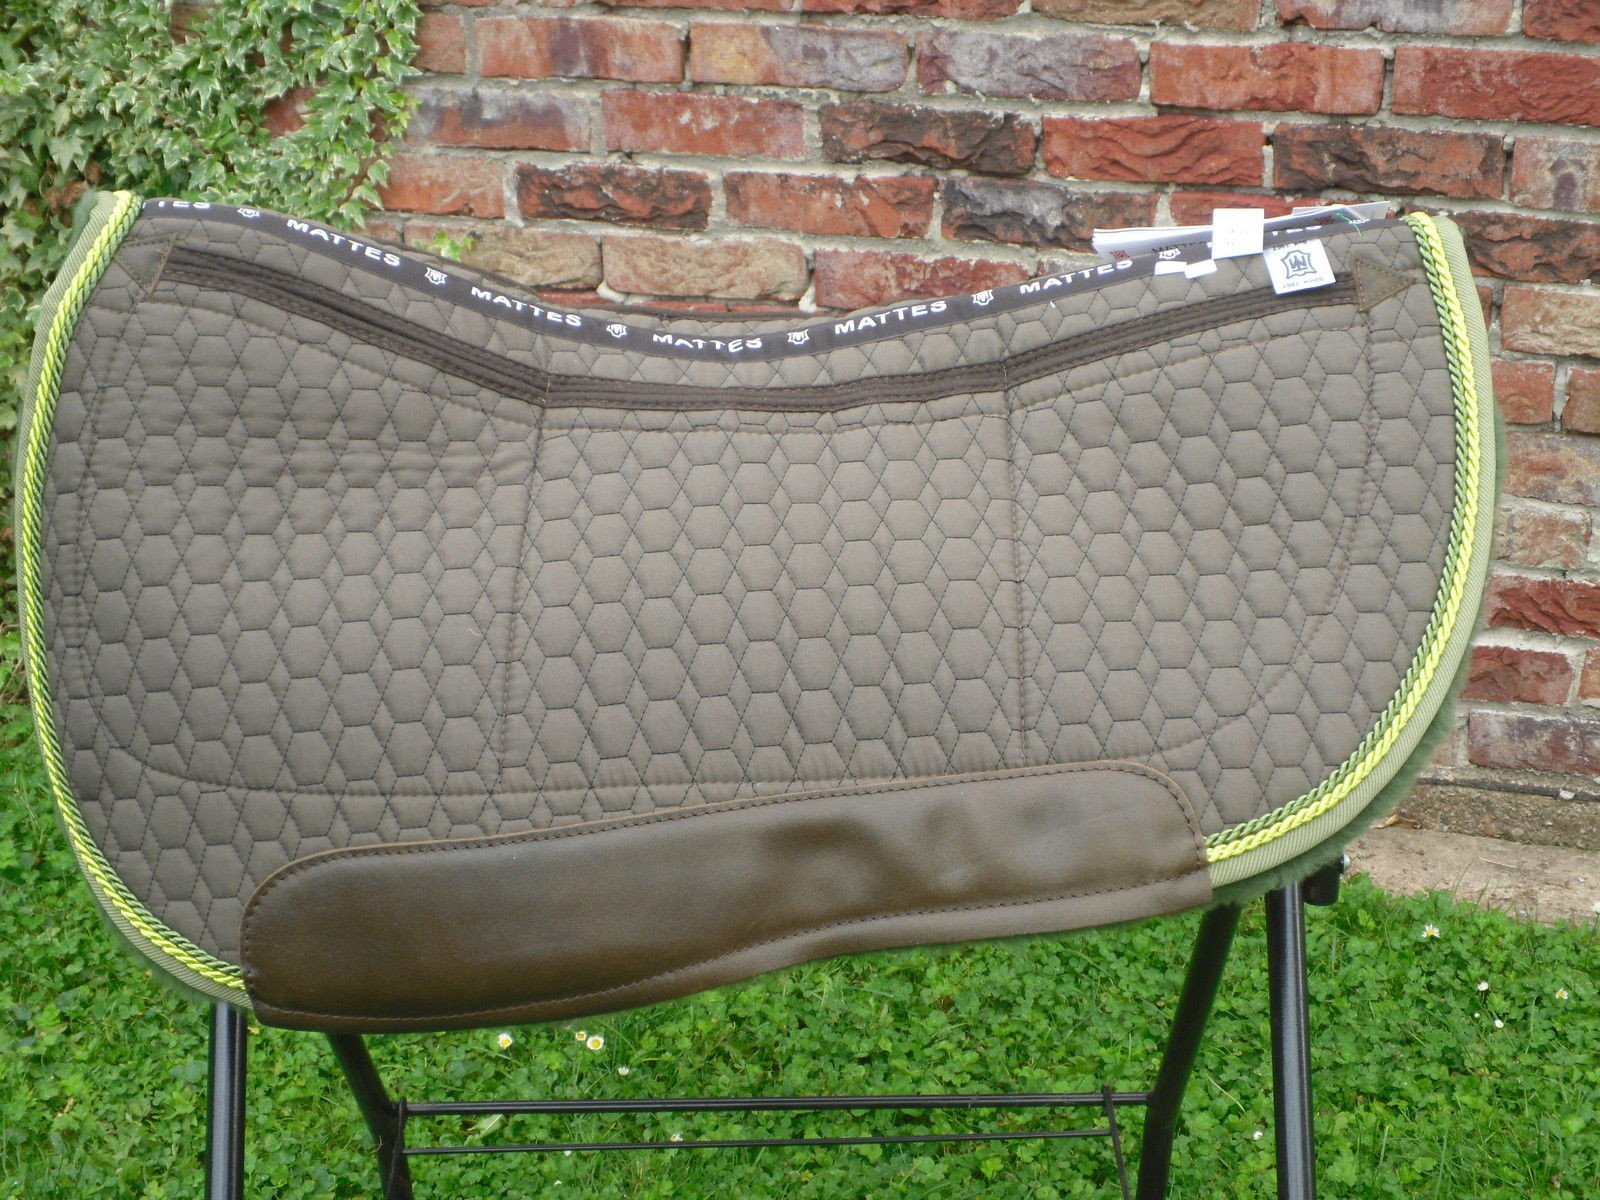 Correction Westernpad Mattes Round RIO PECOS Stoff taupe Fell olive 2 K 70cm